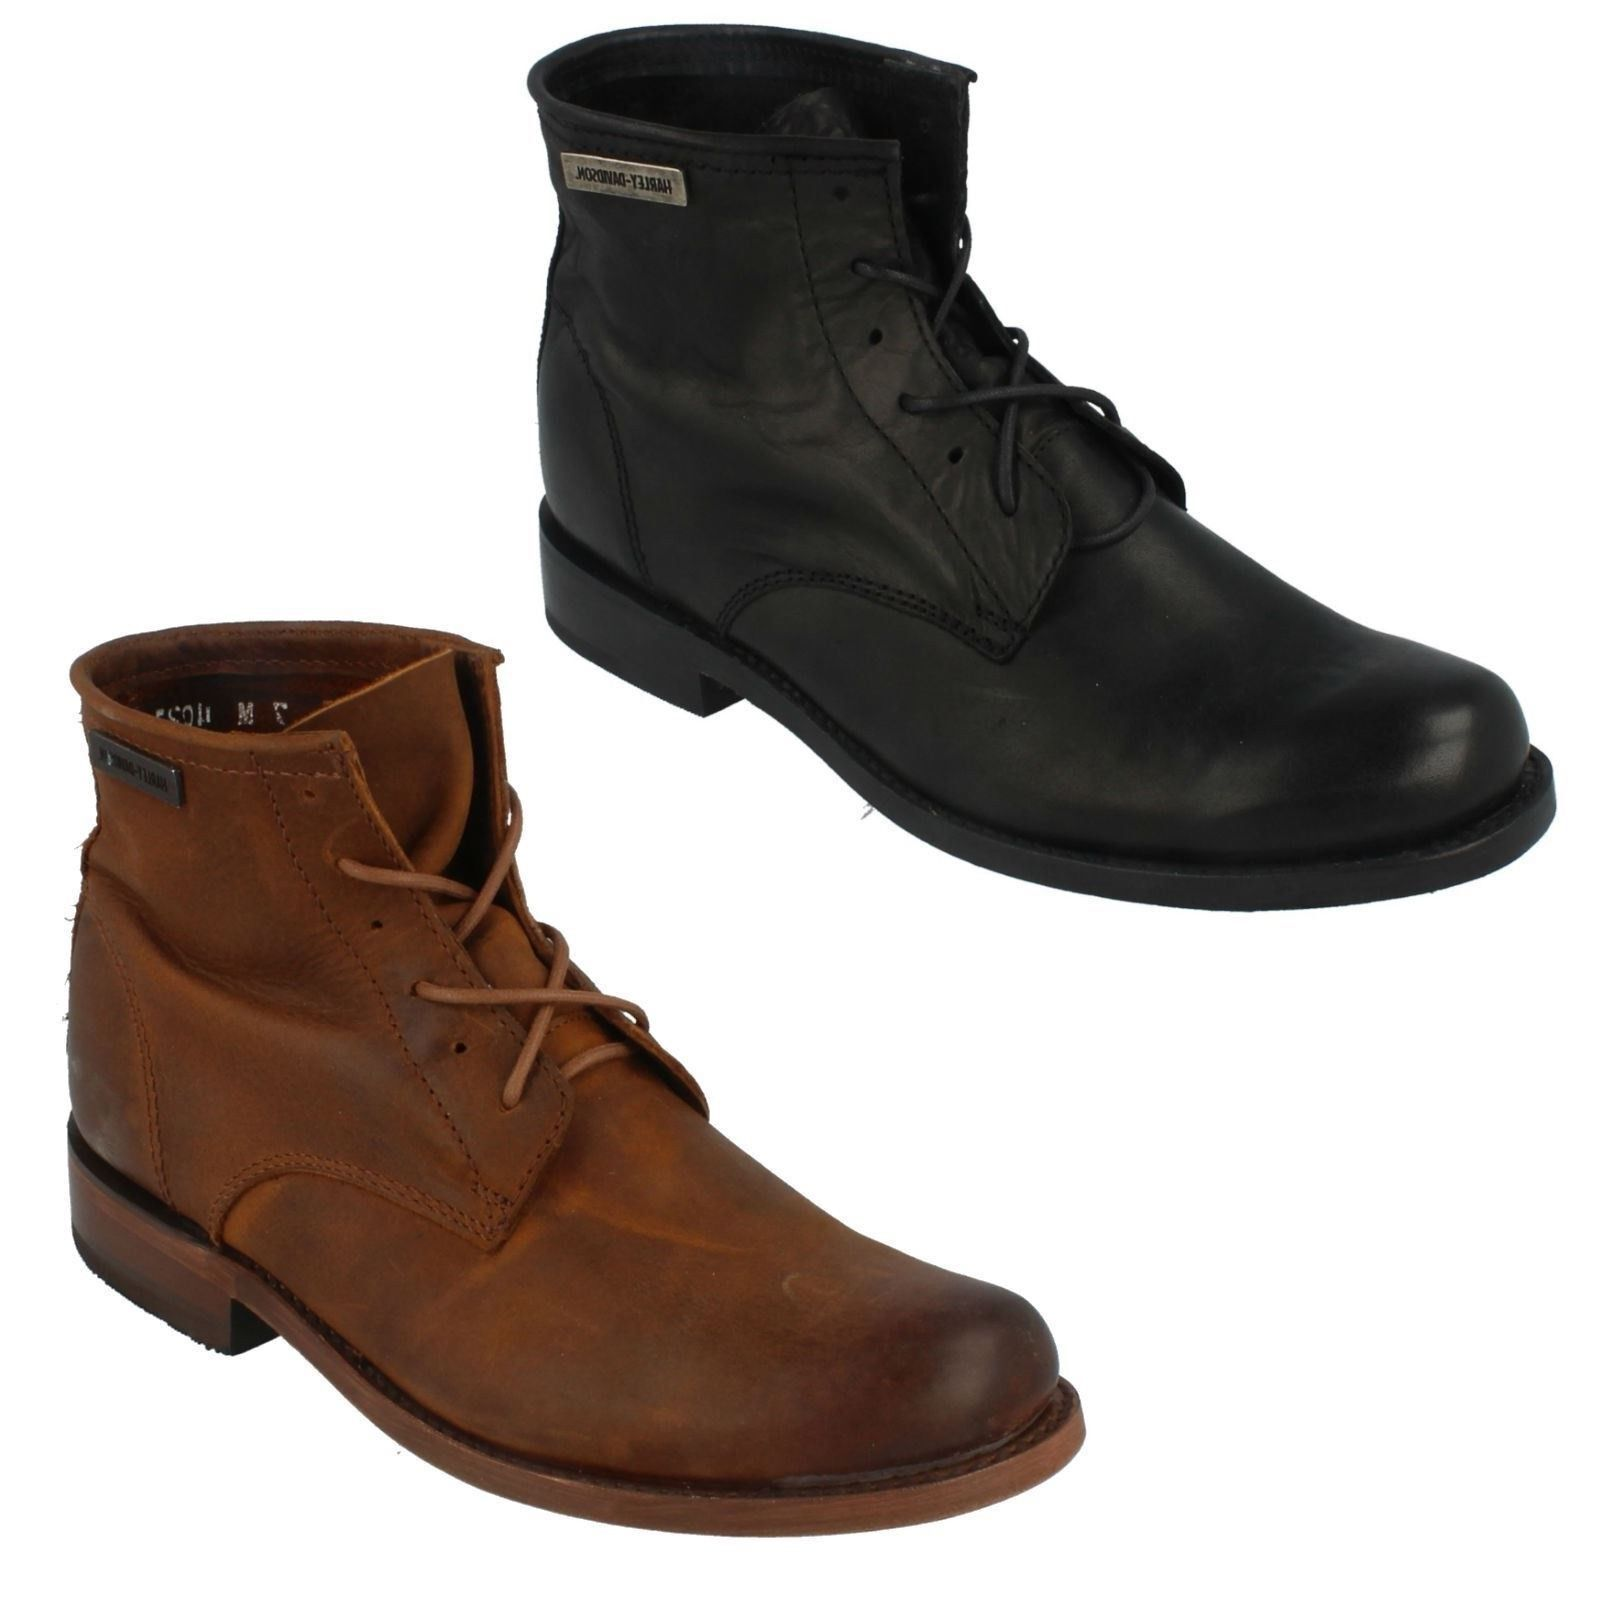 Mens Black or Tan Leather Harley Davidson Lace Up  Boots TARRSON